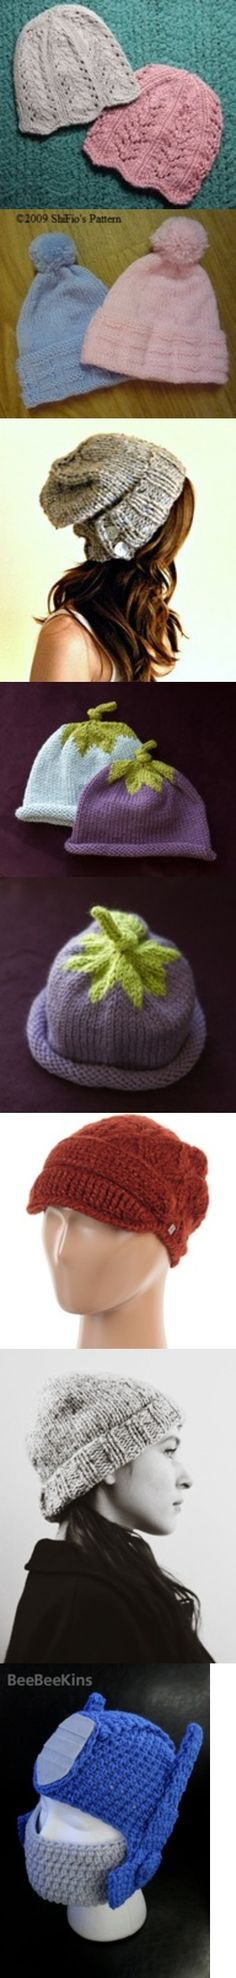 What do you think of these knitted hats?